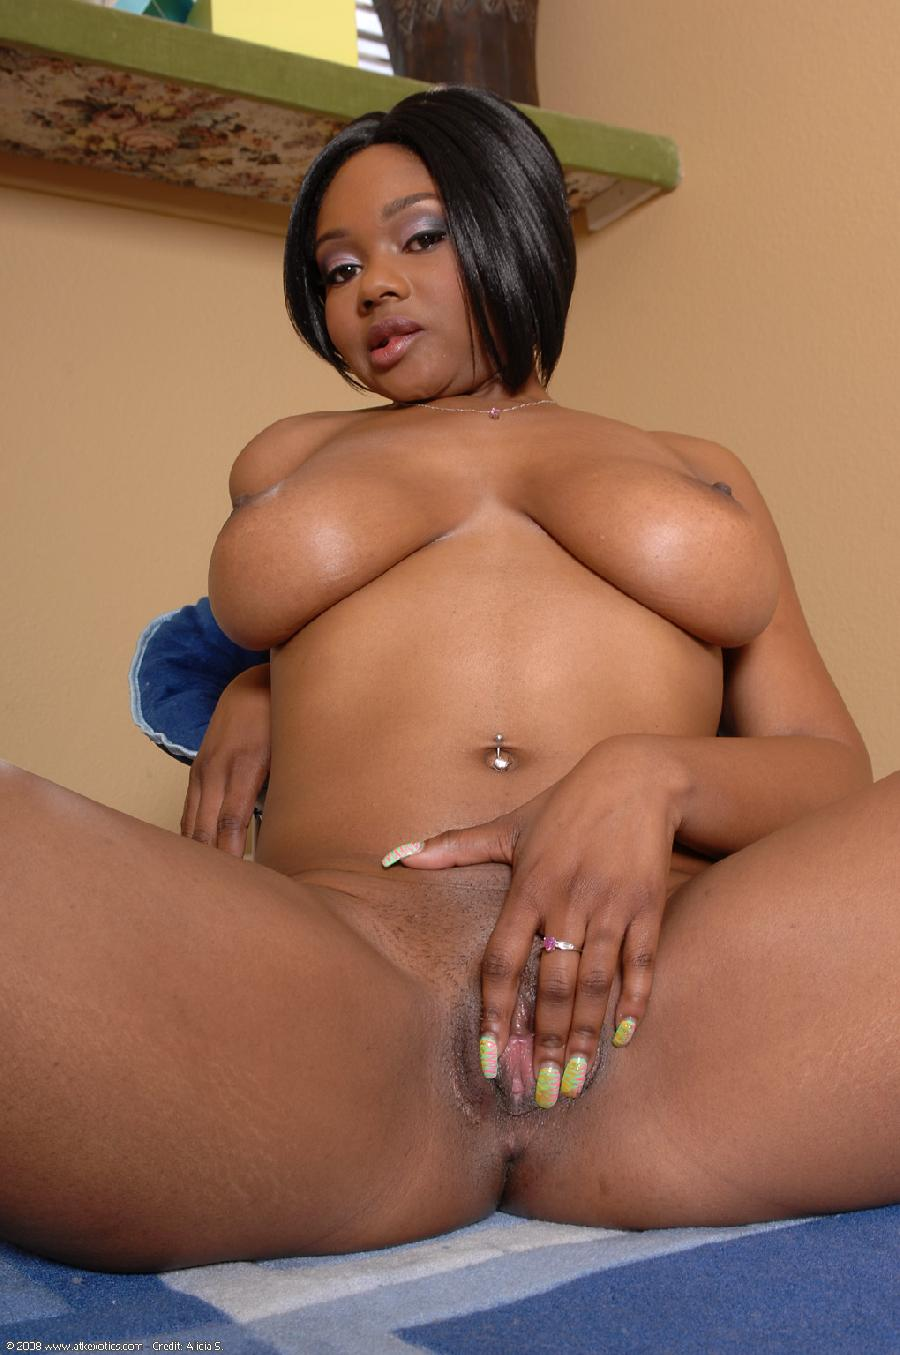 Black girl with firm ass - 8